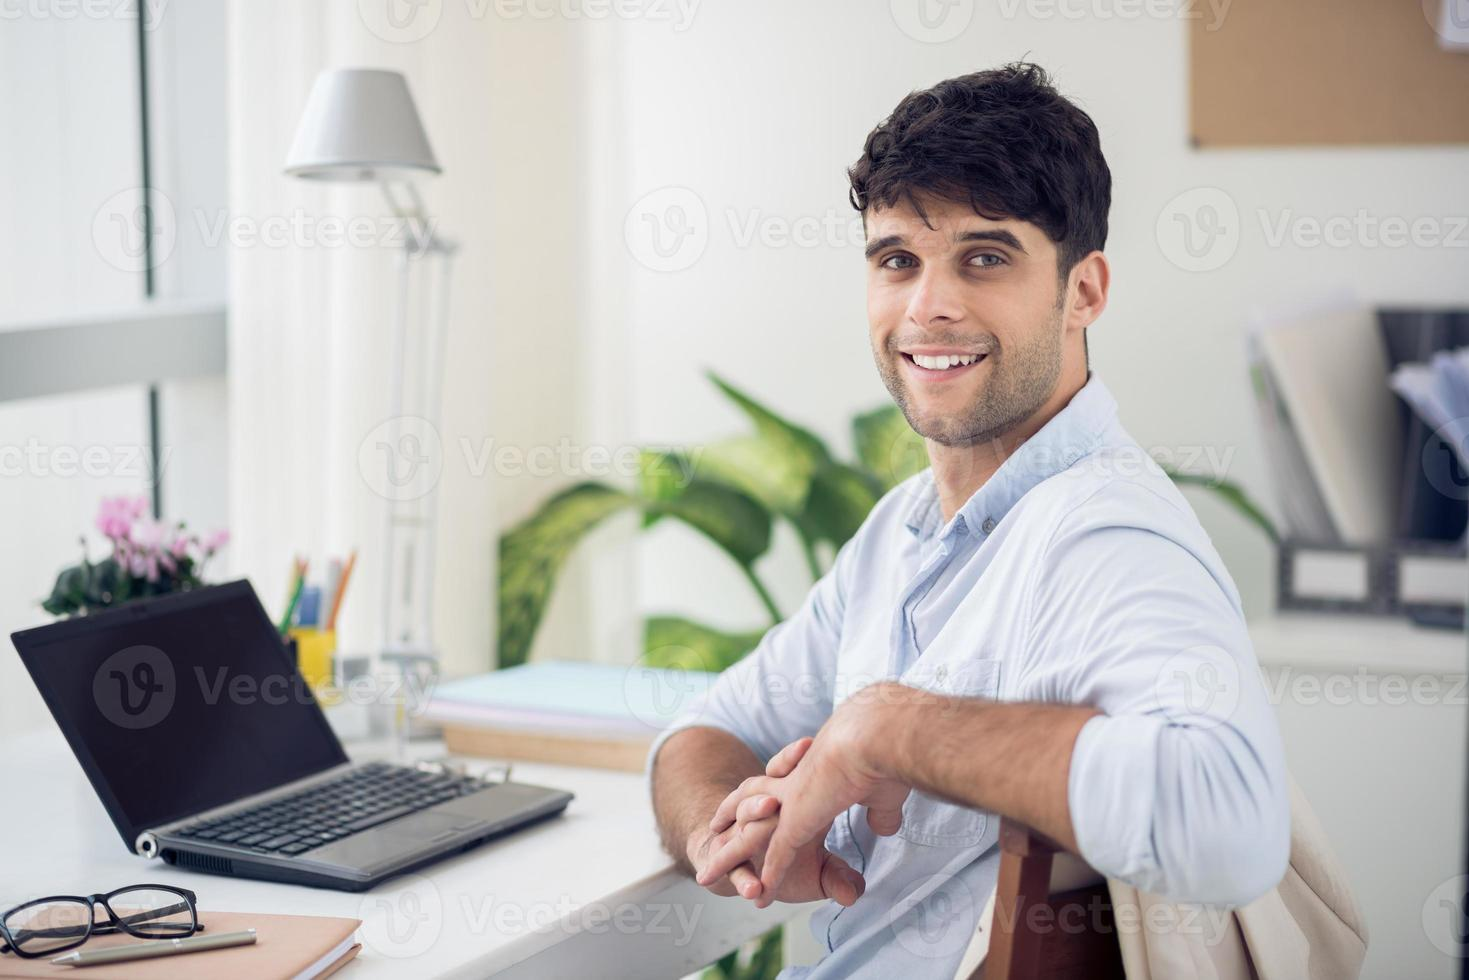 Handsome young businessman photo